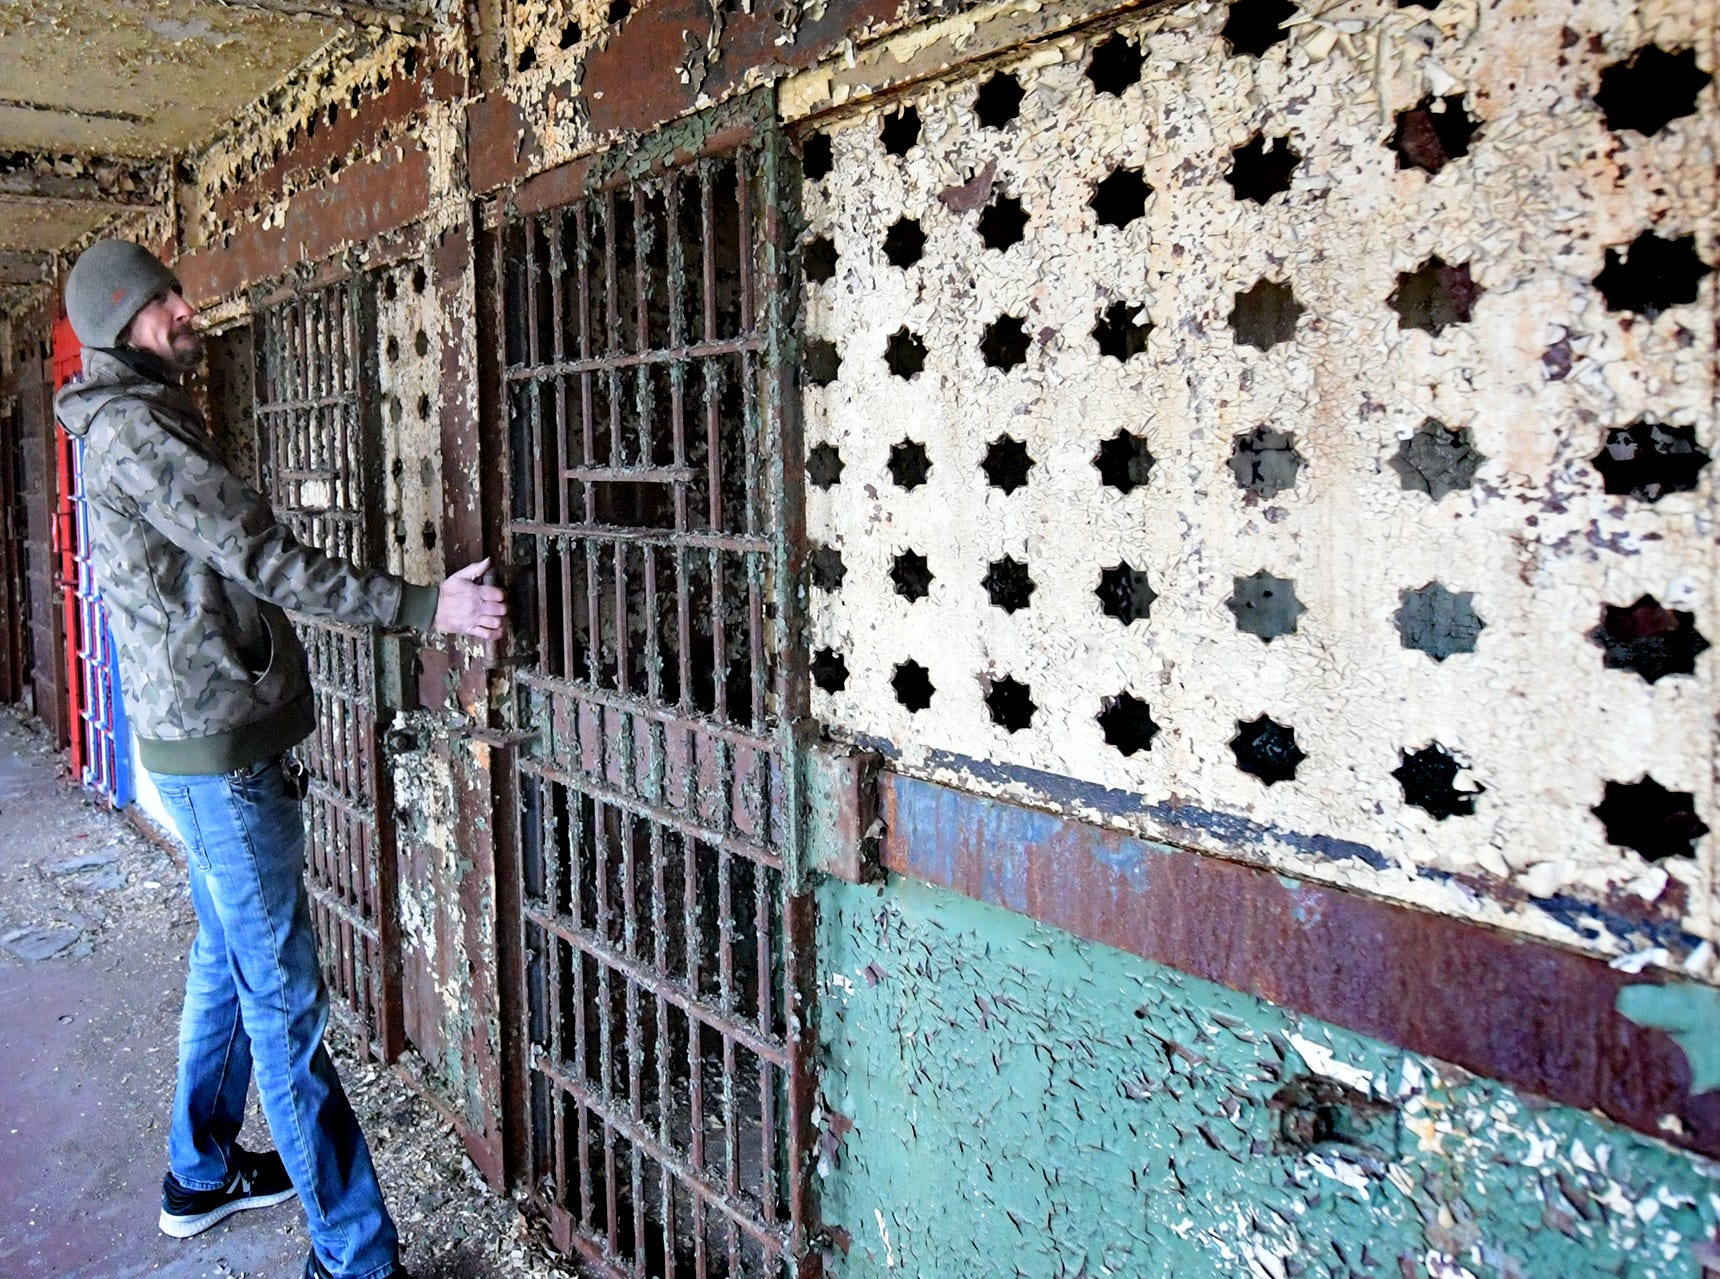 Think Loud building manager Scott Gracey finds a working cell door while touring the former York County Prison on Chestnut Street in York City Wednesday, Nov. 28, 2018. United Fiber and Data has purchased the building and plans to incorporate the structure into a data center to accompany a 400-mile fiber-optic network it's building between New York and Virginia. Bill Kalina photo